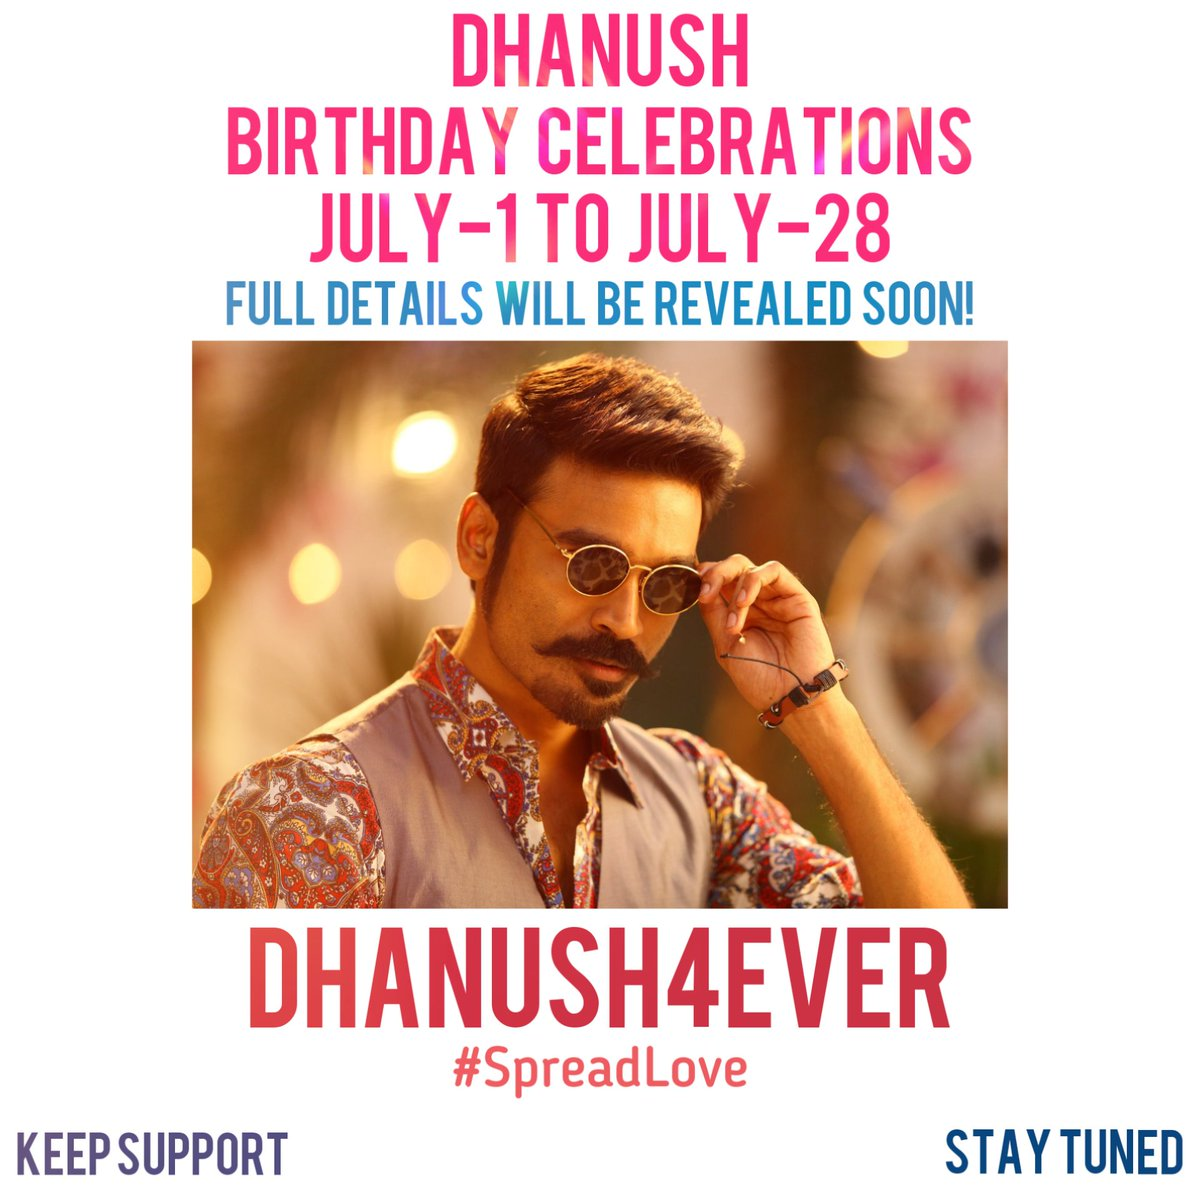 D B'DAY CELEBRATIONS 🥁 From July-1 To July-28 💃🕺 Full Details Will Be Revealed Soon!  @dhanushkraja @Dhanush4ever_ #dhanush4ever #dhanush #dhanushkraja ❤️